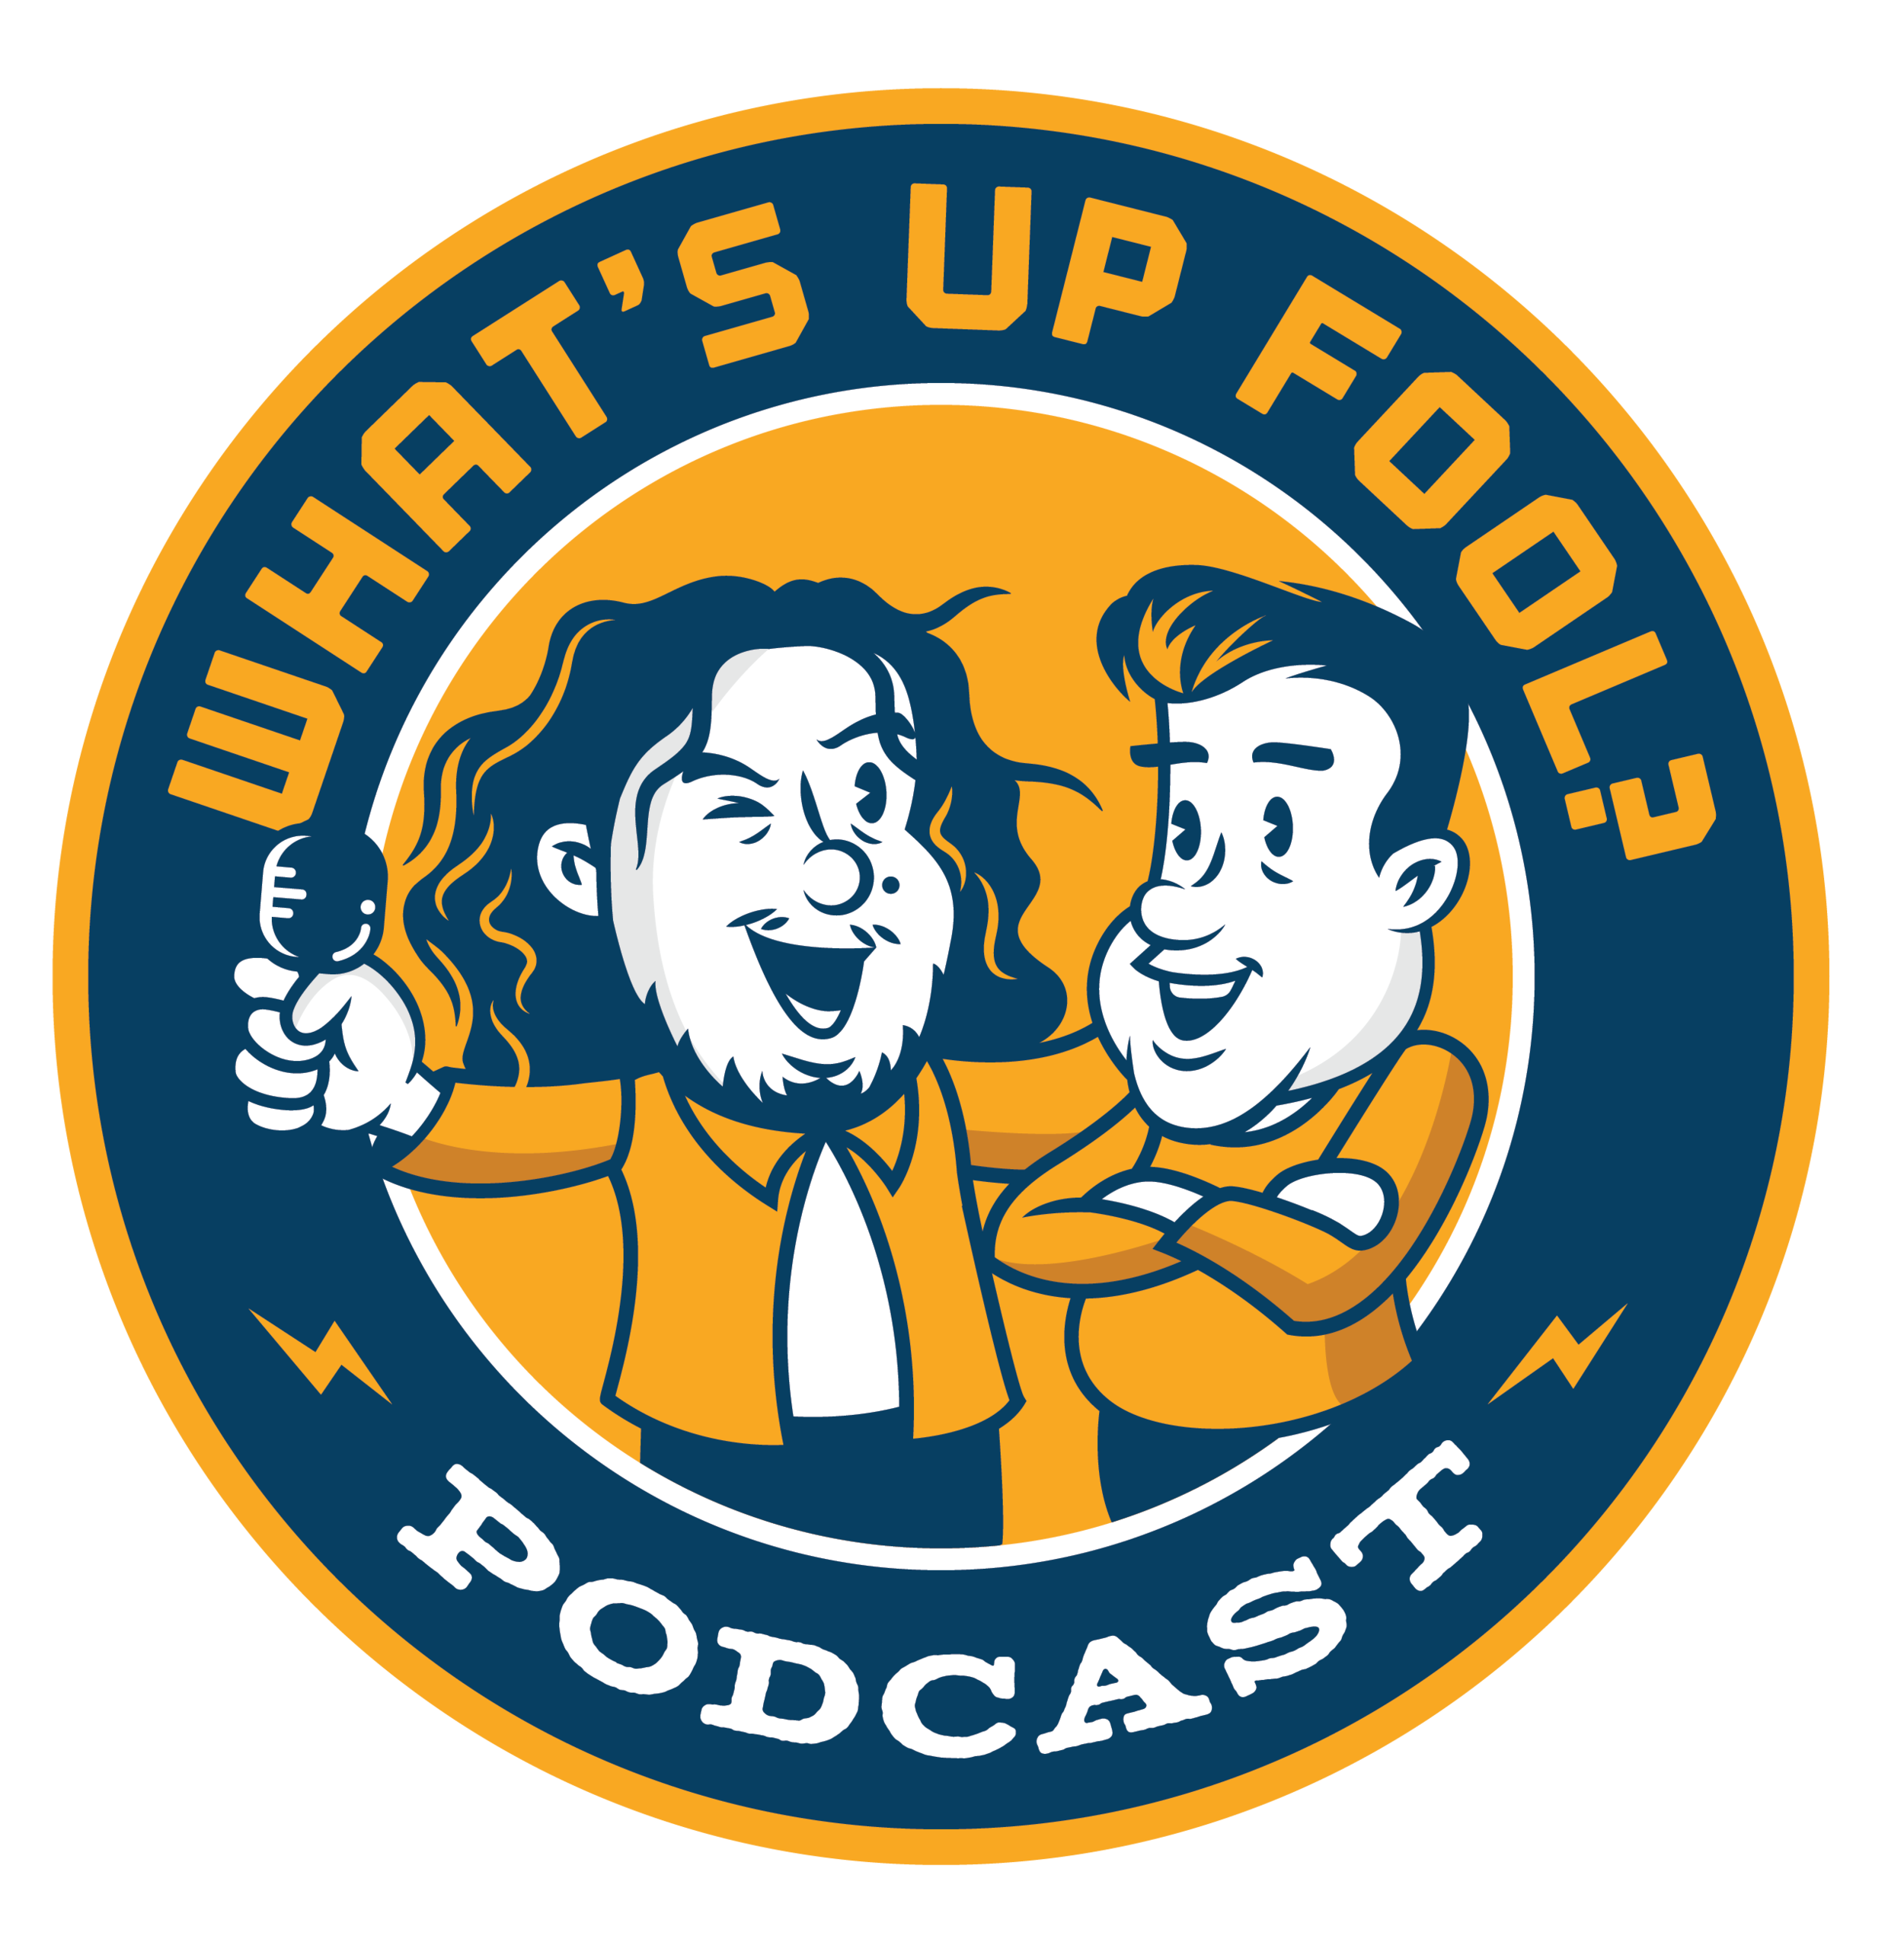 What's Up Fool? - Felipe Esparza invited me on his awesome podcast on All Things Comedy. We chat about comedy drama, the Bay vs LA and a bunch of other random shit. WHAT'S UP FOOL?